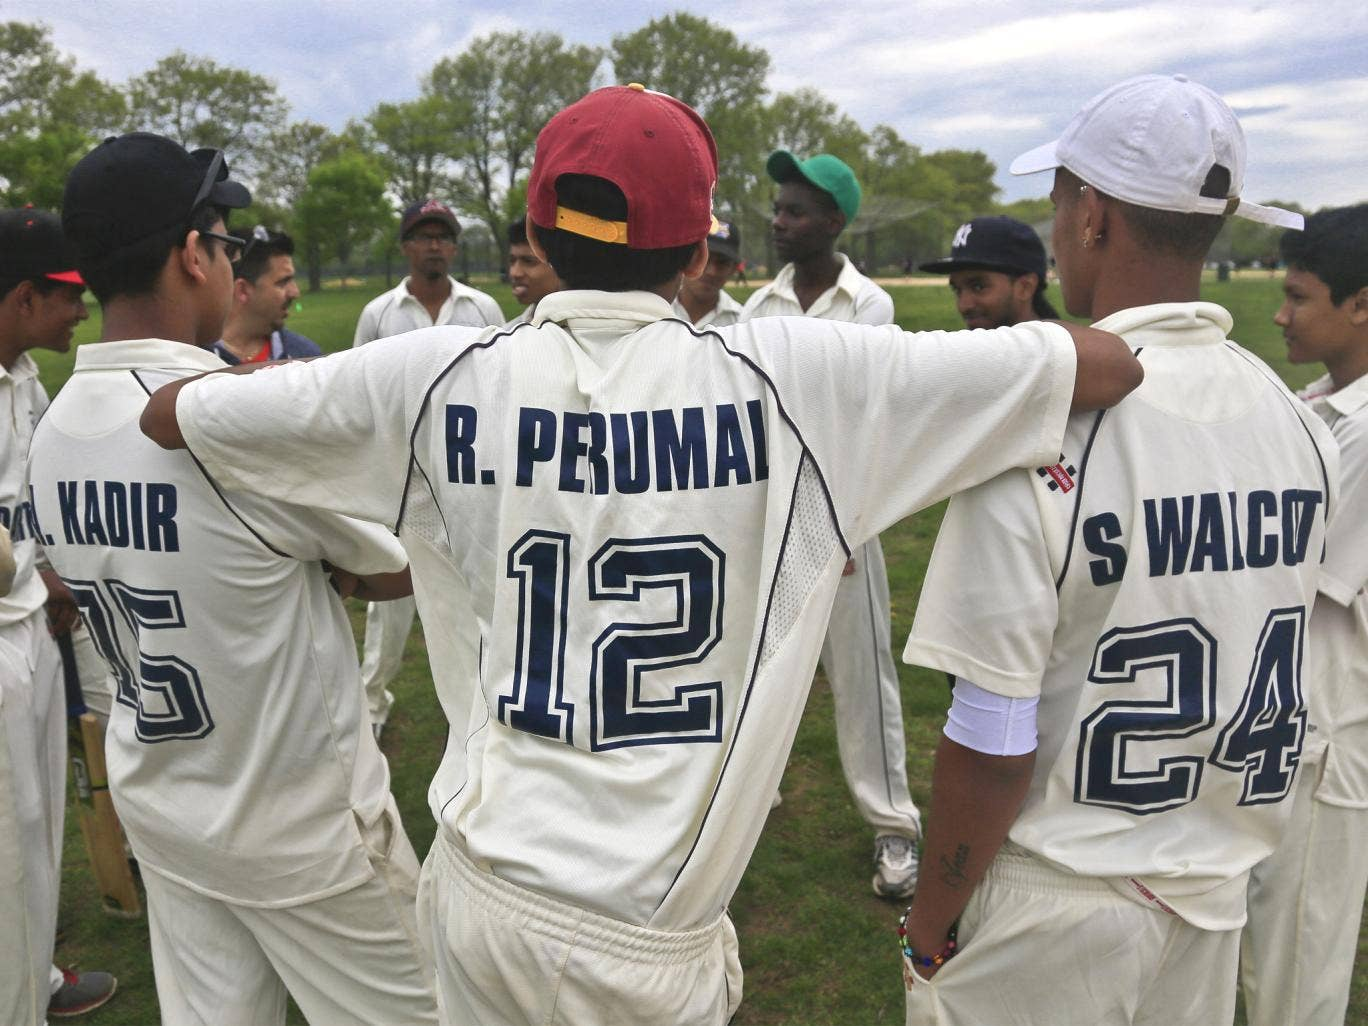 There are now some 30,000 cricketers in the US, as shown here in Brooklyn, New York